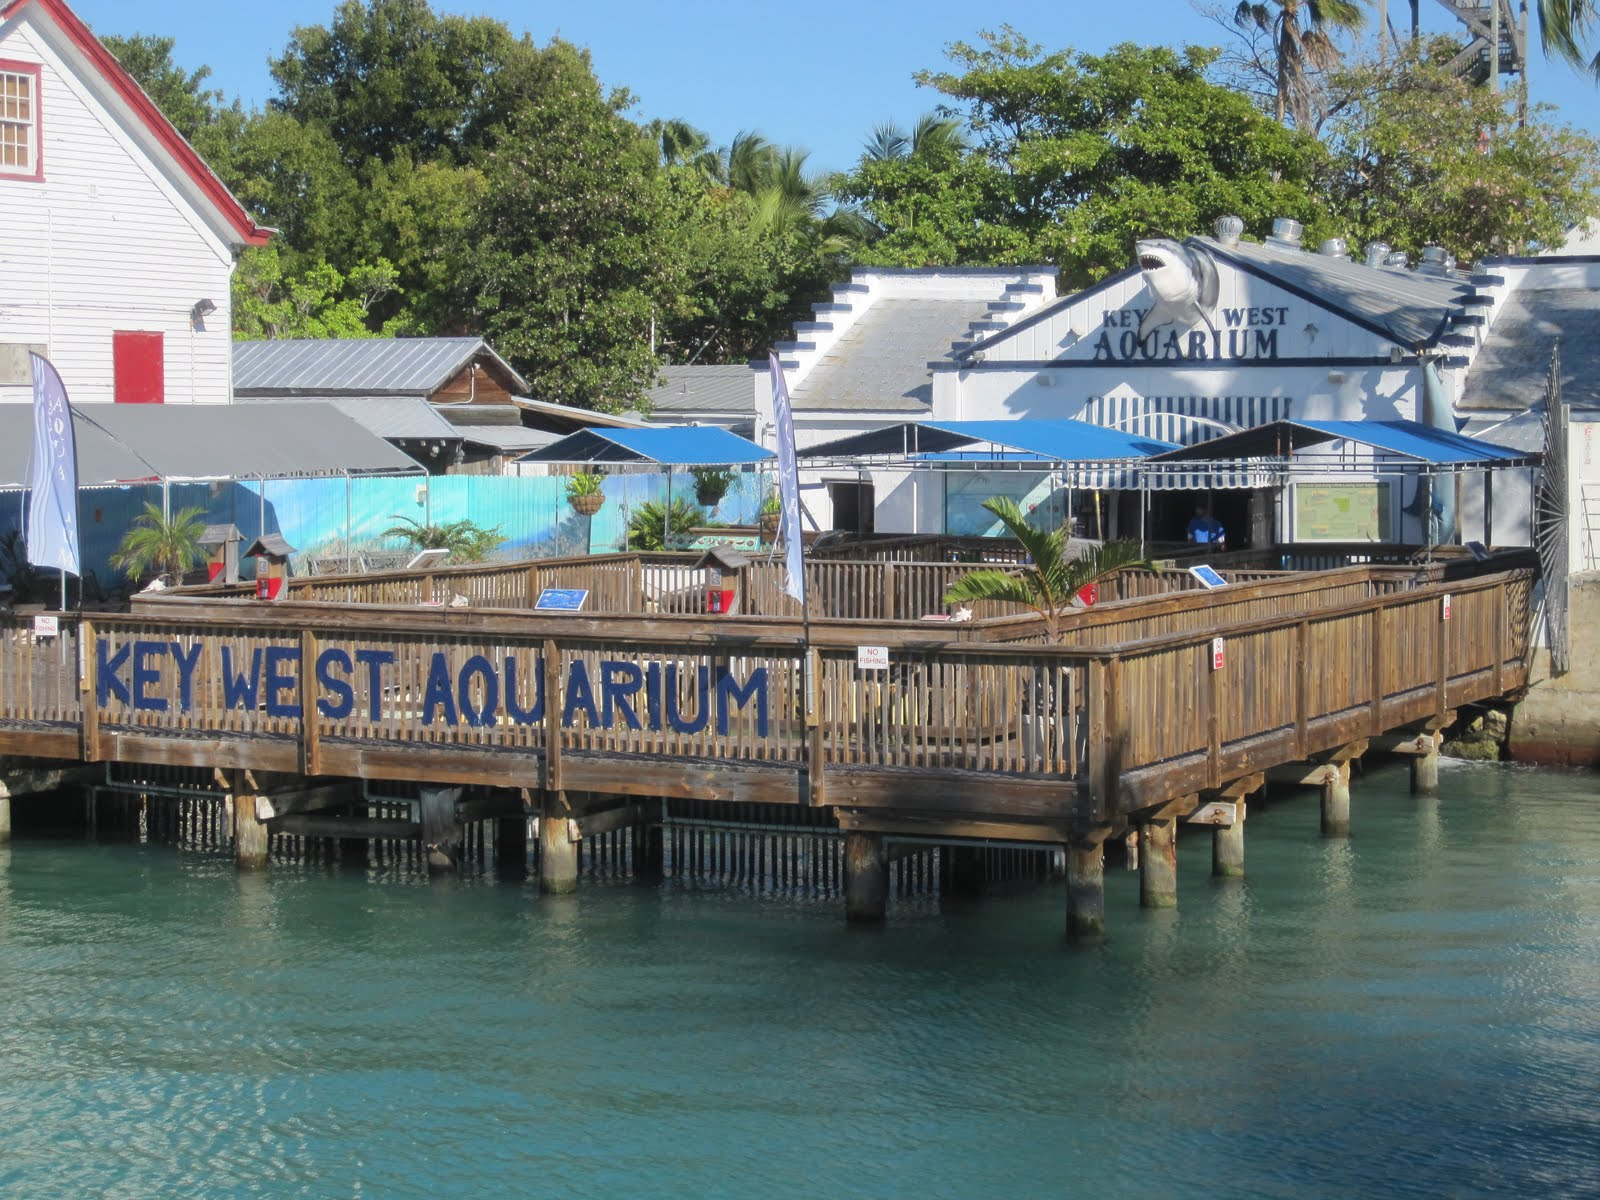 one of the most unique aquariums in the world, the Key West Aquarium